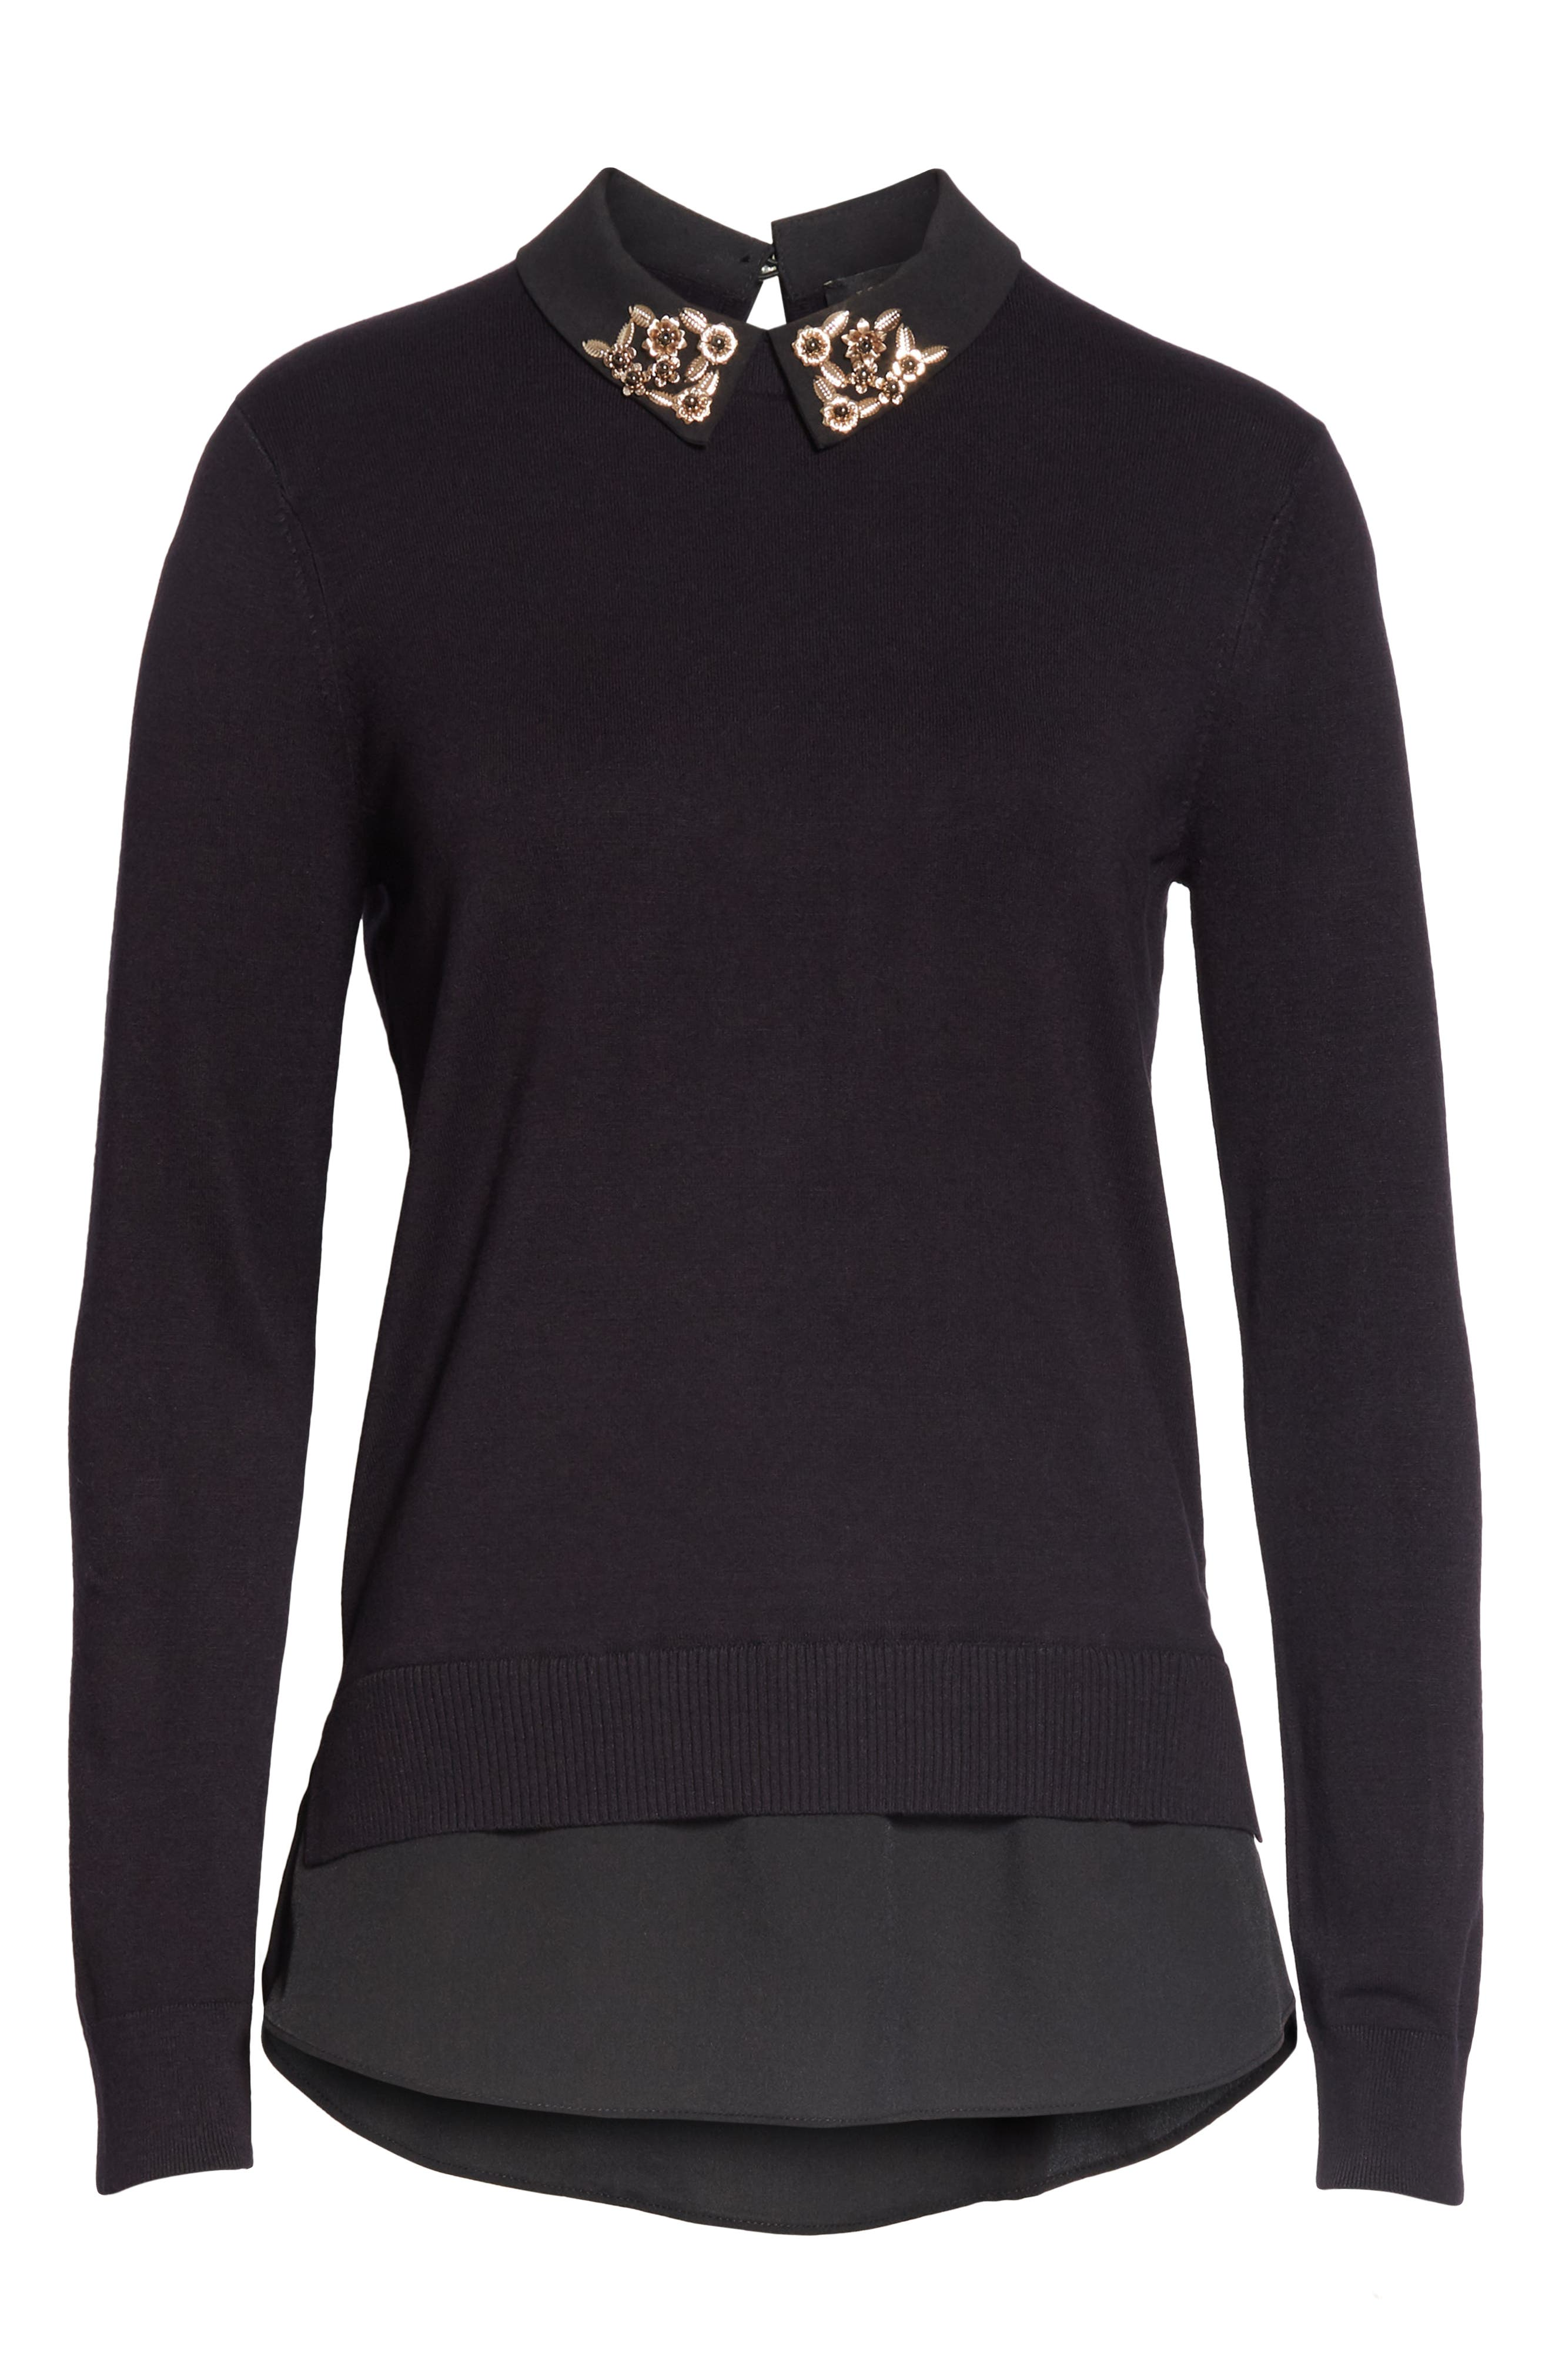 Moliiee Embroidered Collar Sweater,                             Alternate thumbnail 6, color,                             BLACK